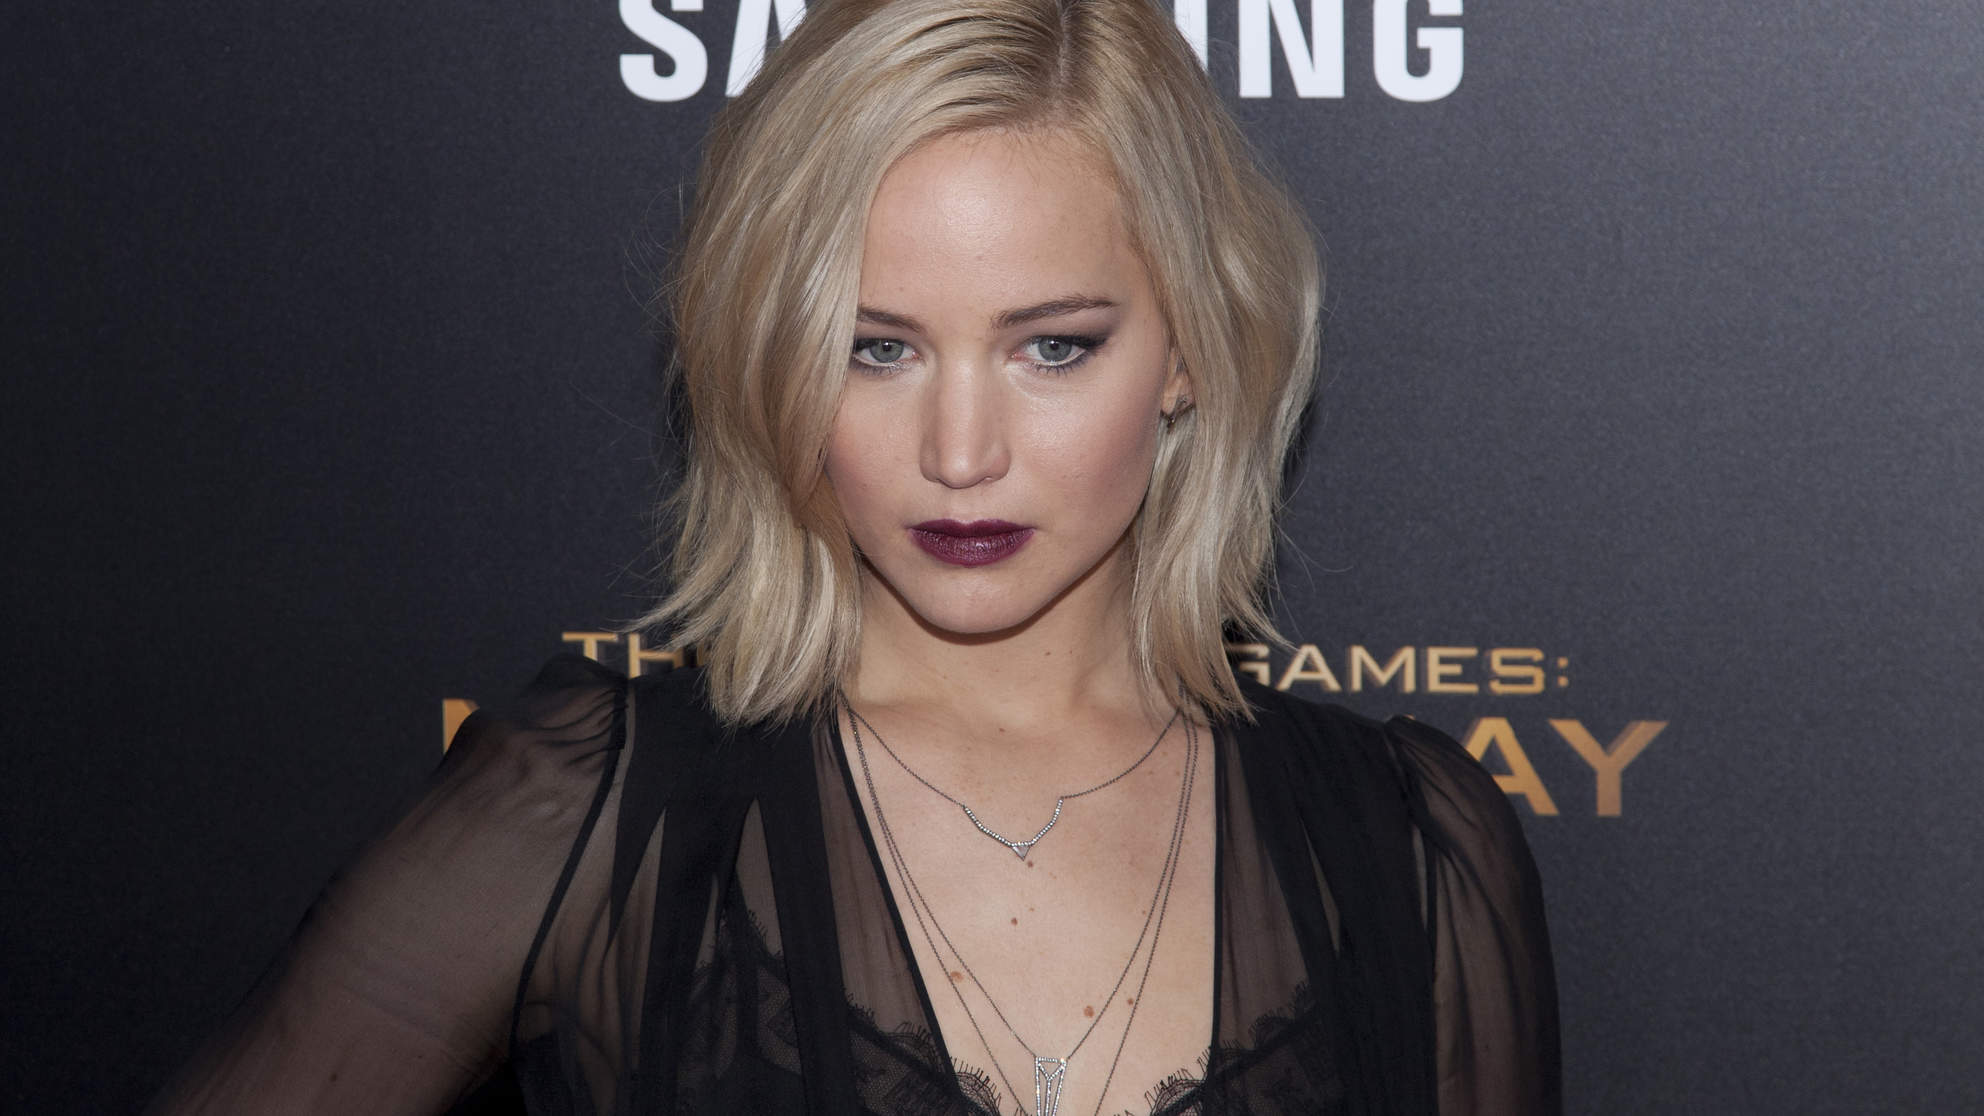 Jennifer Lawrence Hairstyle Trends 2020